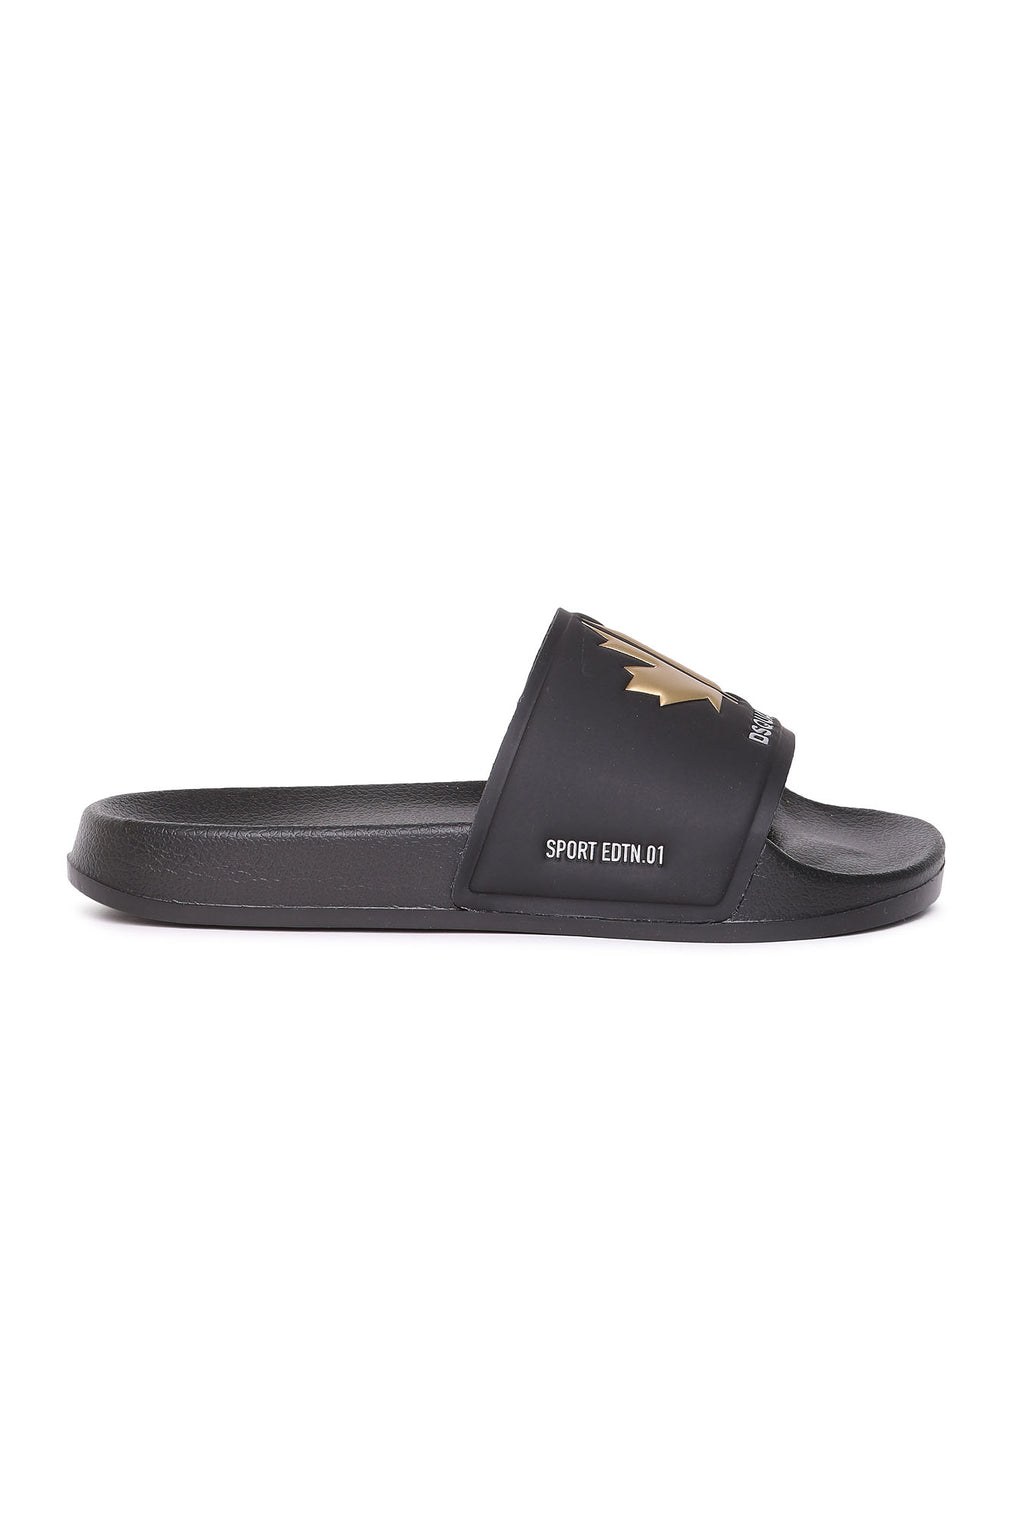 Sandales Slide Black-DSQUARED2-Maralex Paris (4446371348543)